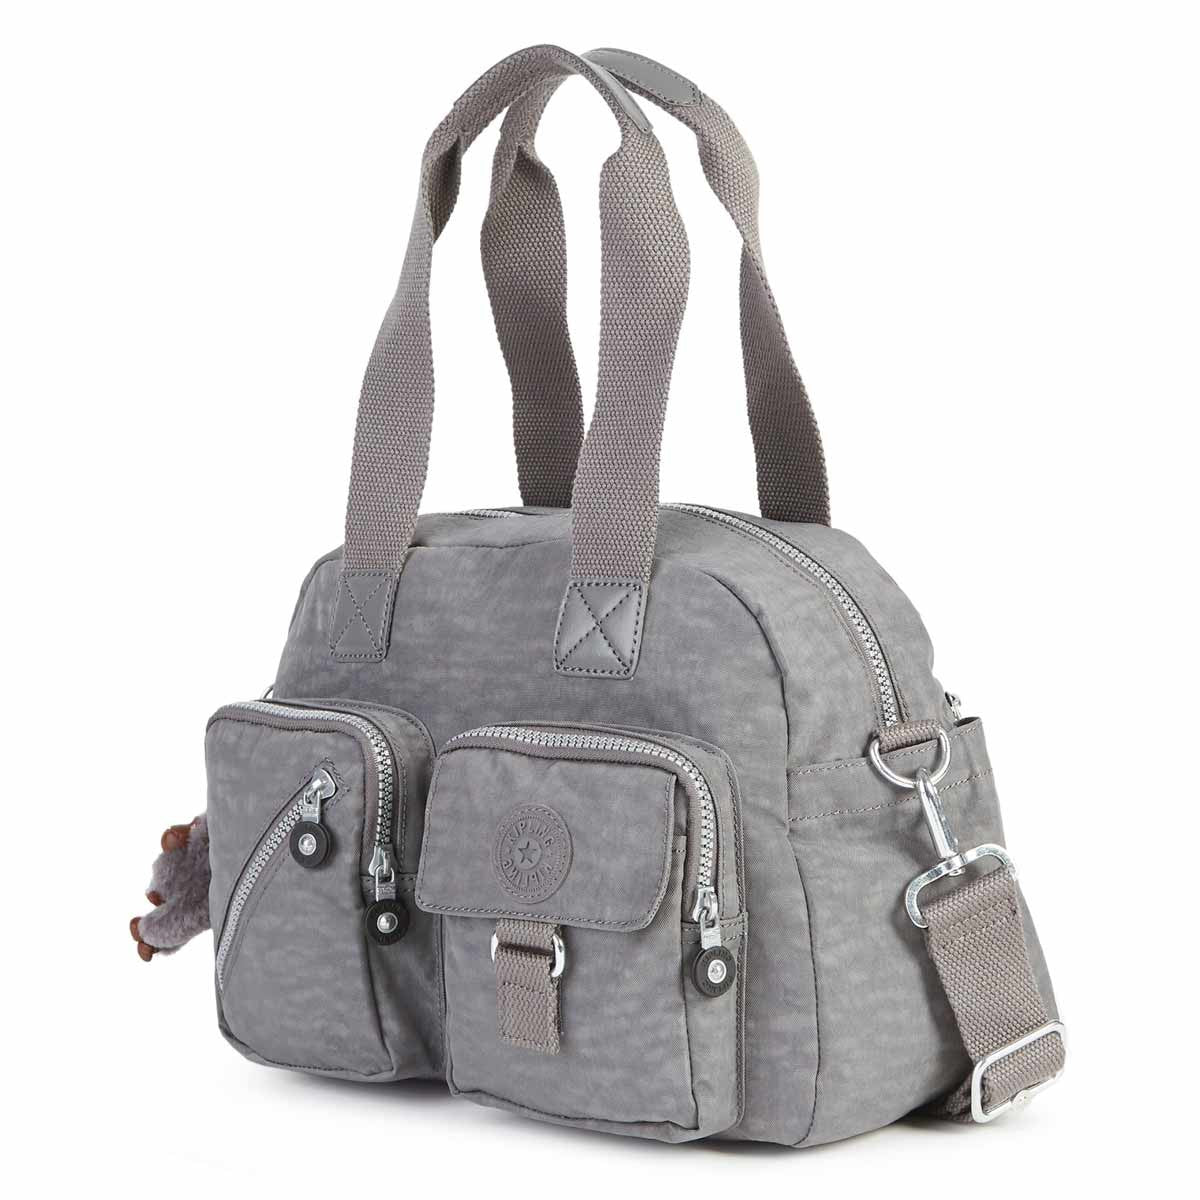 Kipling HB3170-021 Women's Defea Dusty Grey Nylon Crossbody Satchel